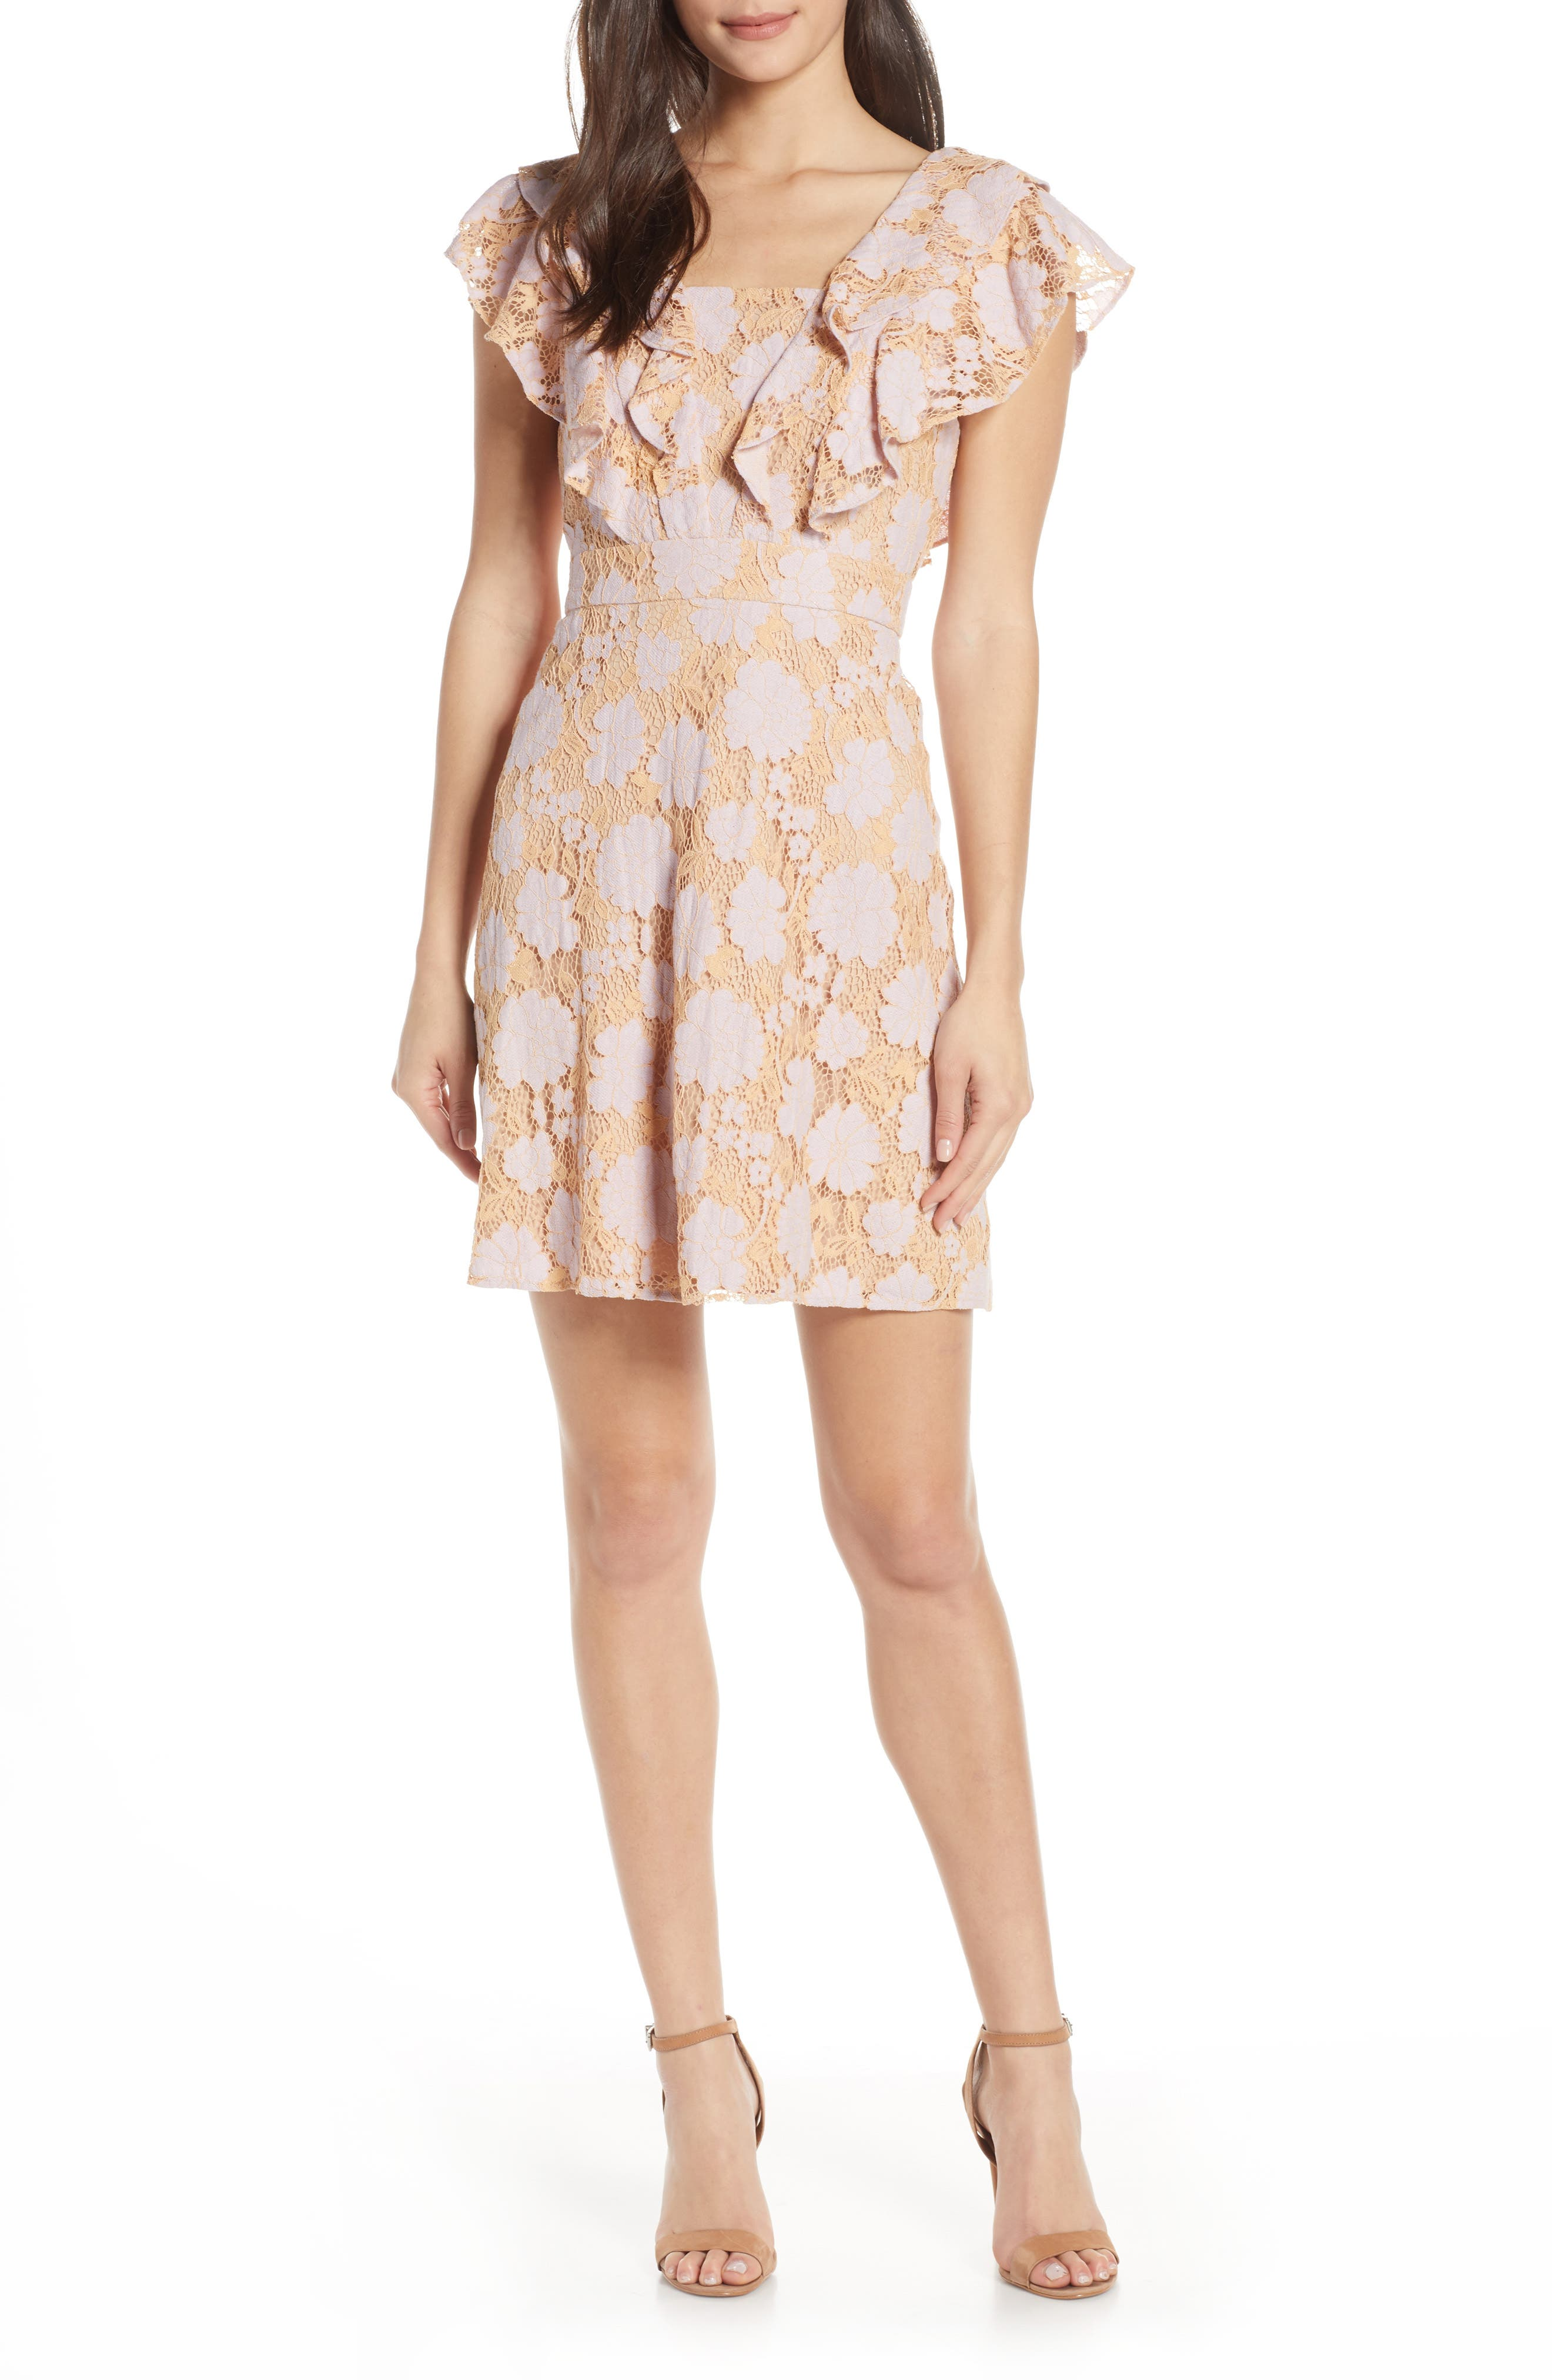 CHARLES HENRY Ruffle Lace Minidress, Main, color, LILAC-PINK LACE